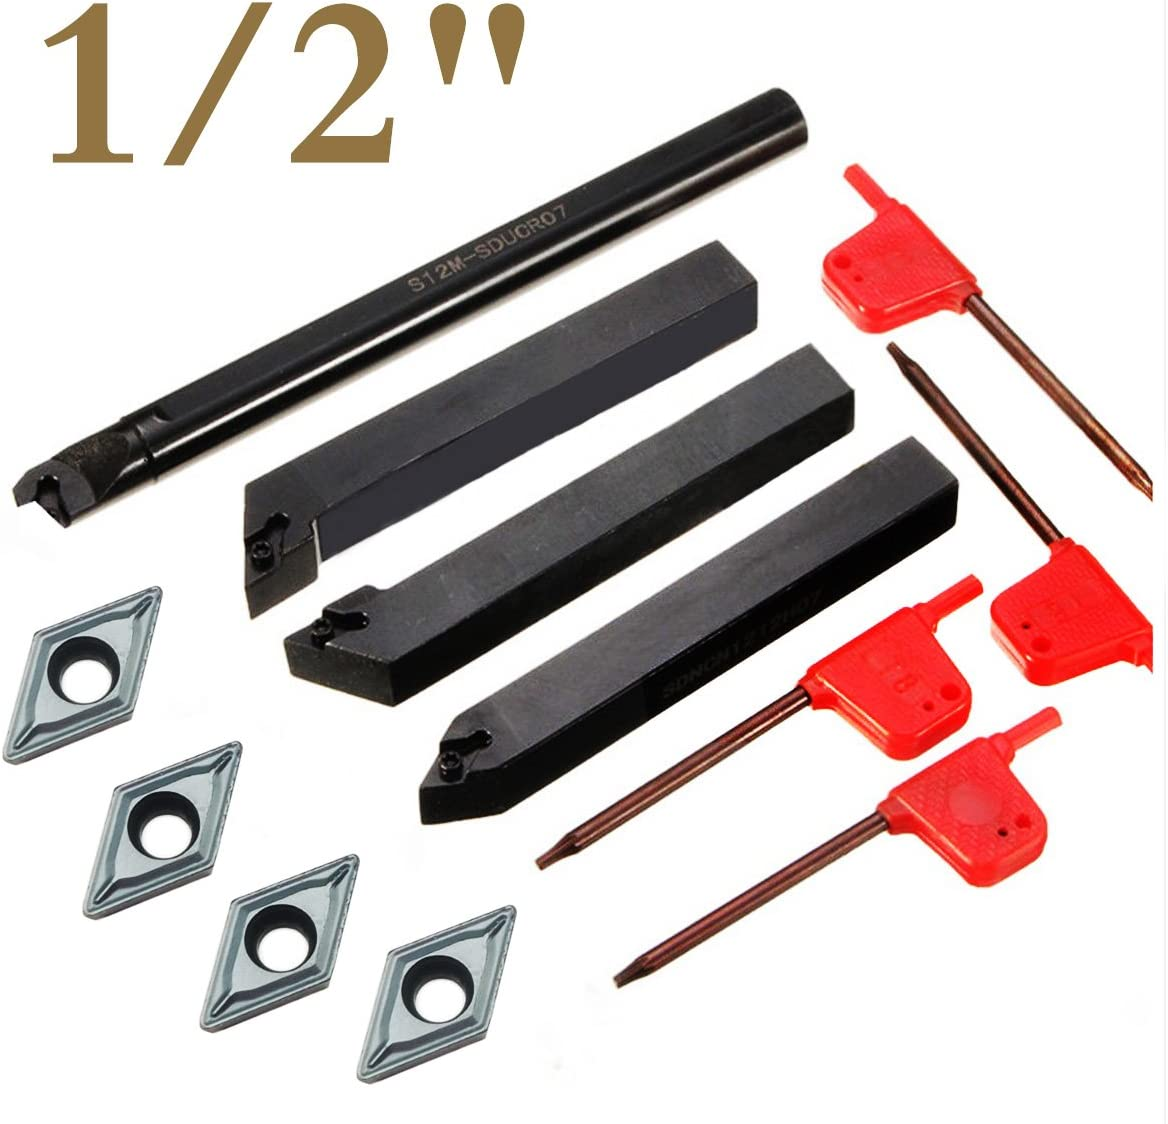 4 Piece 1//2 Mini Lathe Indexable Carbide Turning Tool Holder Bit Set With 4PCS DCMT21.51 Indexable Carbide Turning Insert